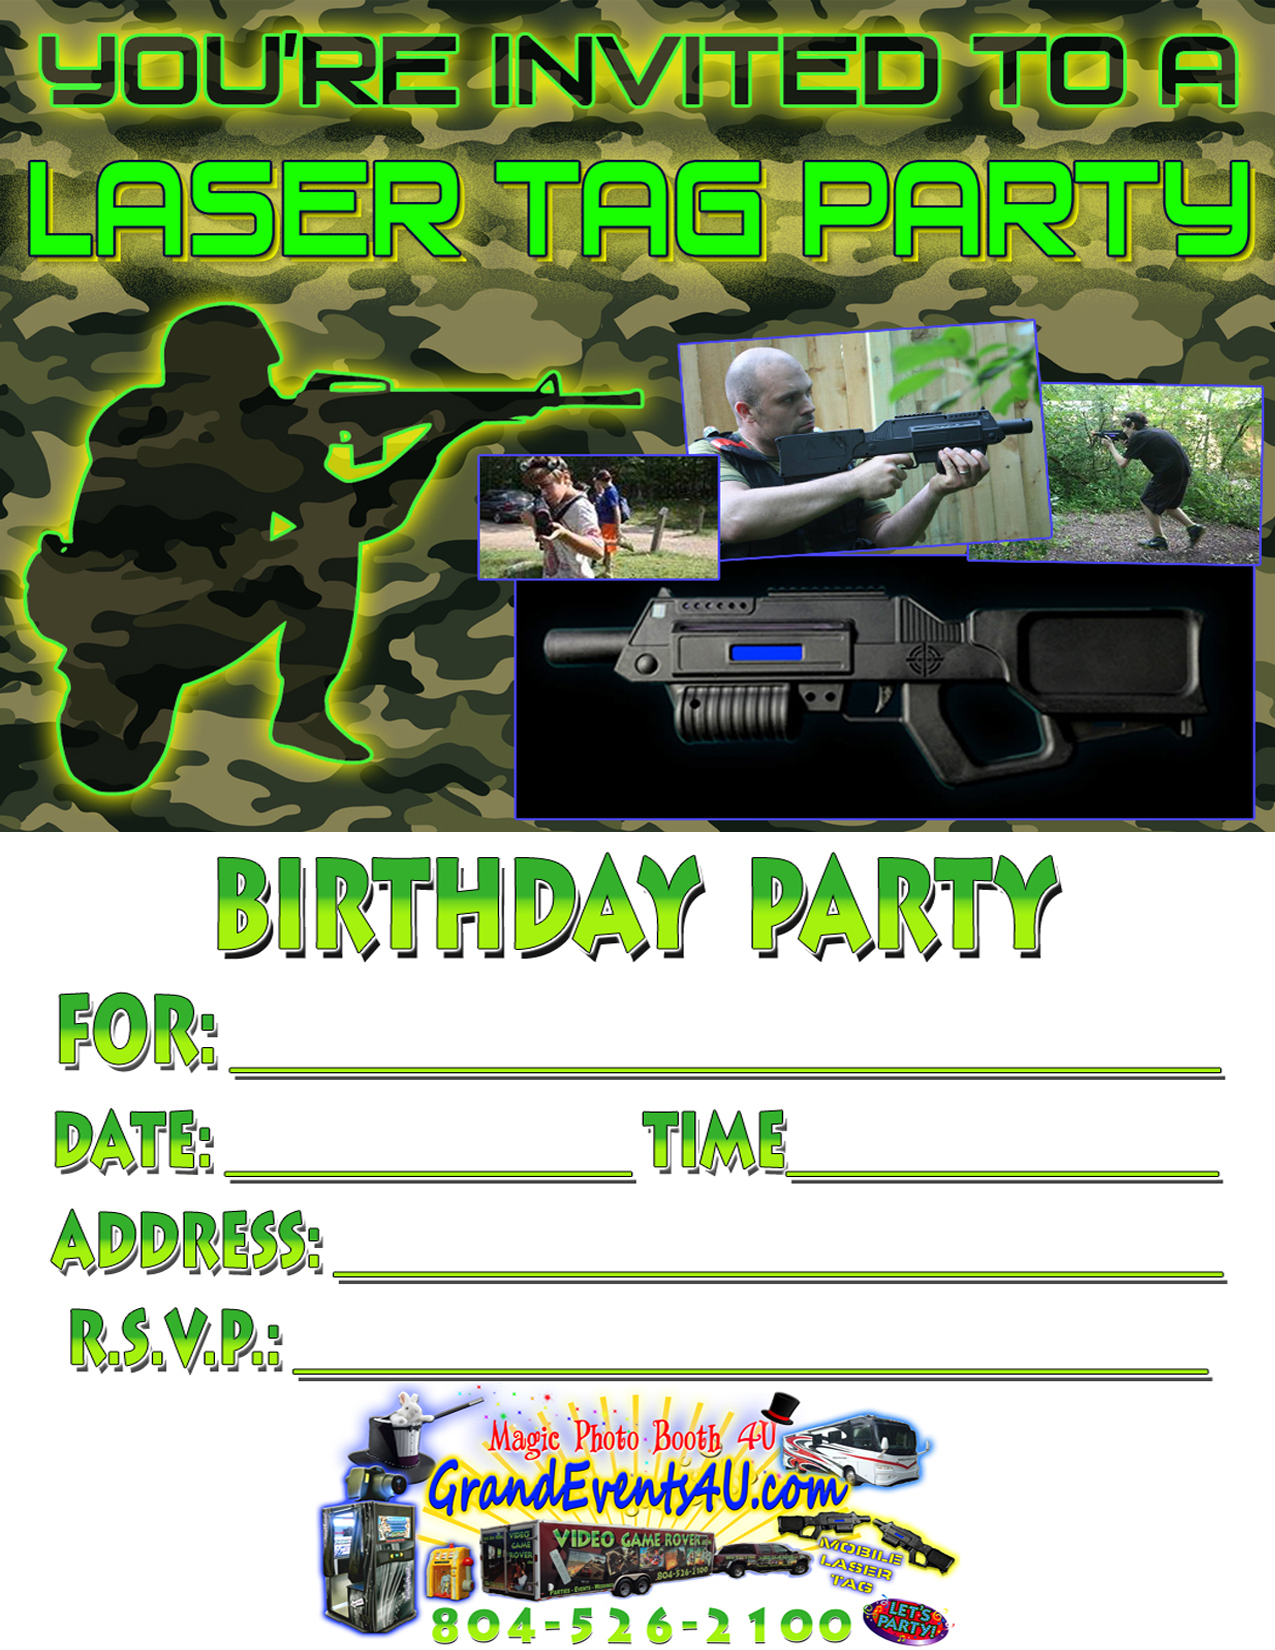 printable laser tag birthday party invitations ; Laser-Tag-Birthday-Party-Invitations-is-one-of-the-best-idea-for-you-to-make-your-own-birthday-Invitation-design-1